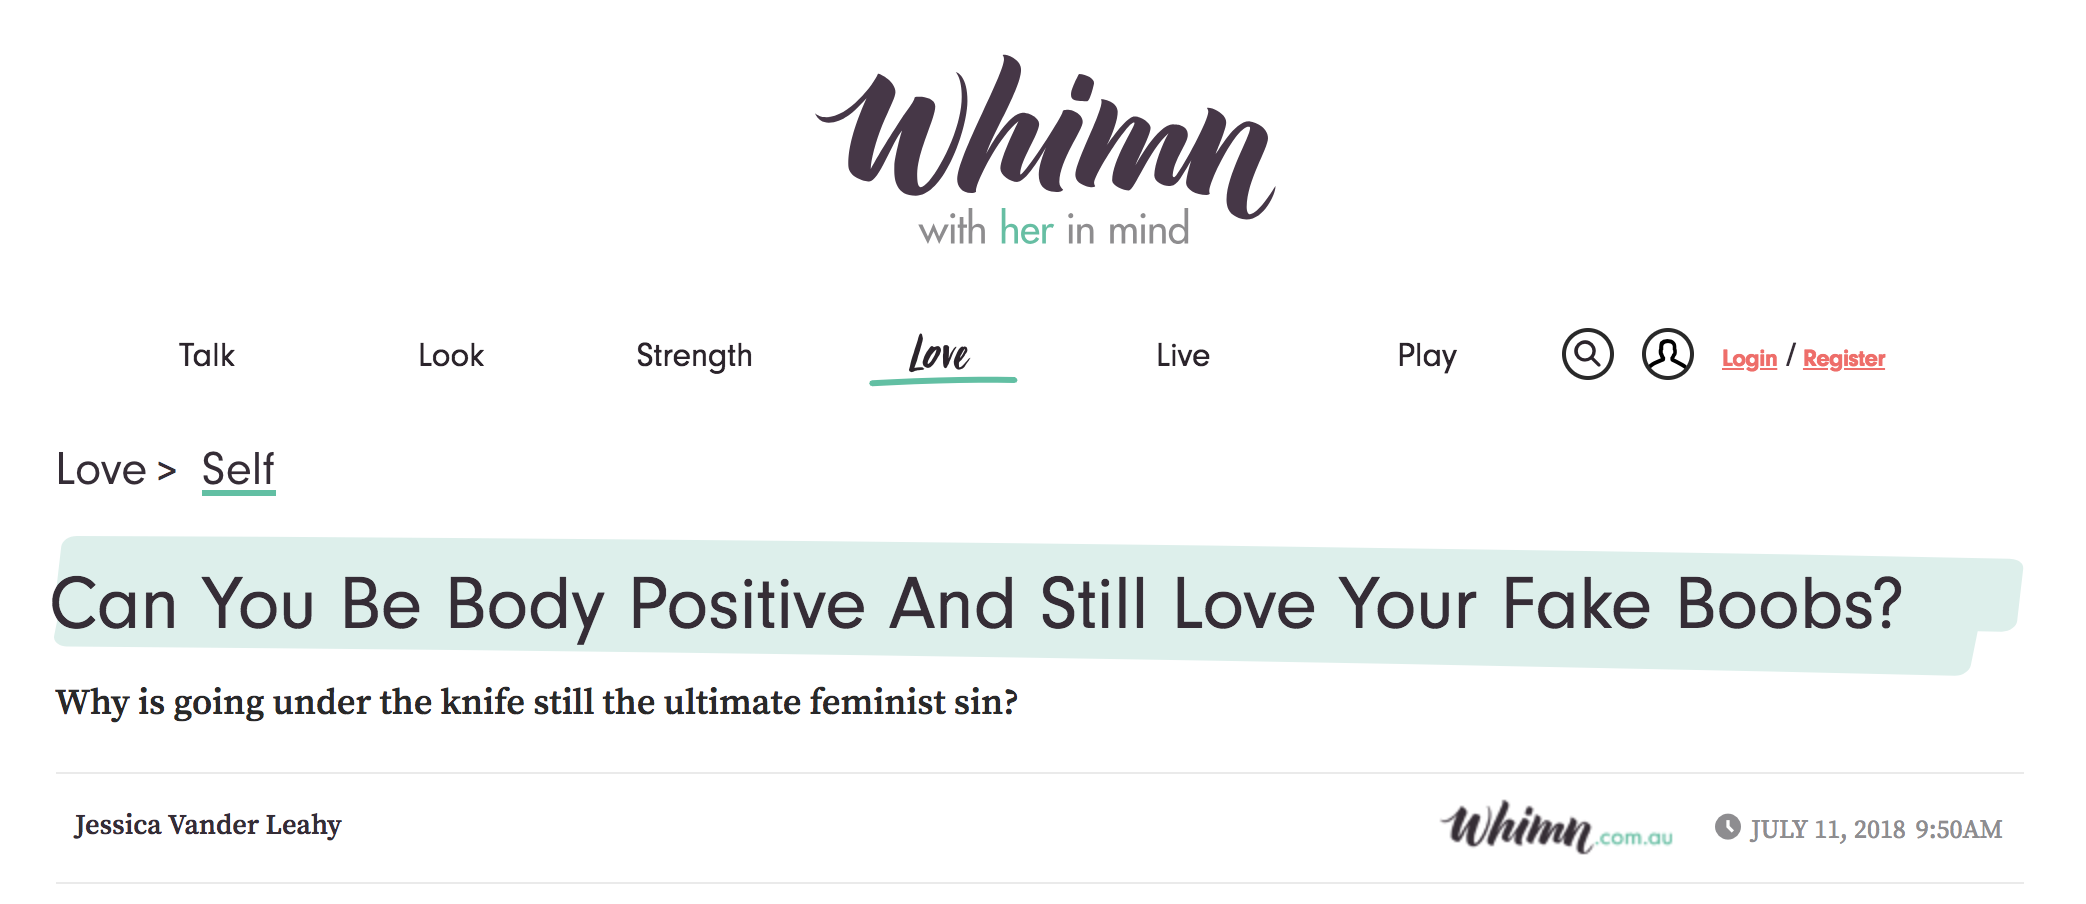 Dr. Devgan featured in Whimn.